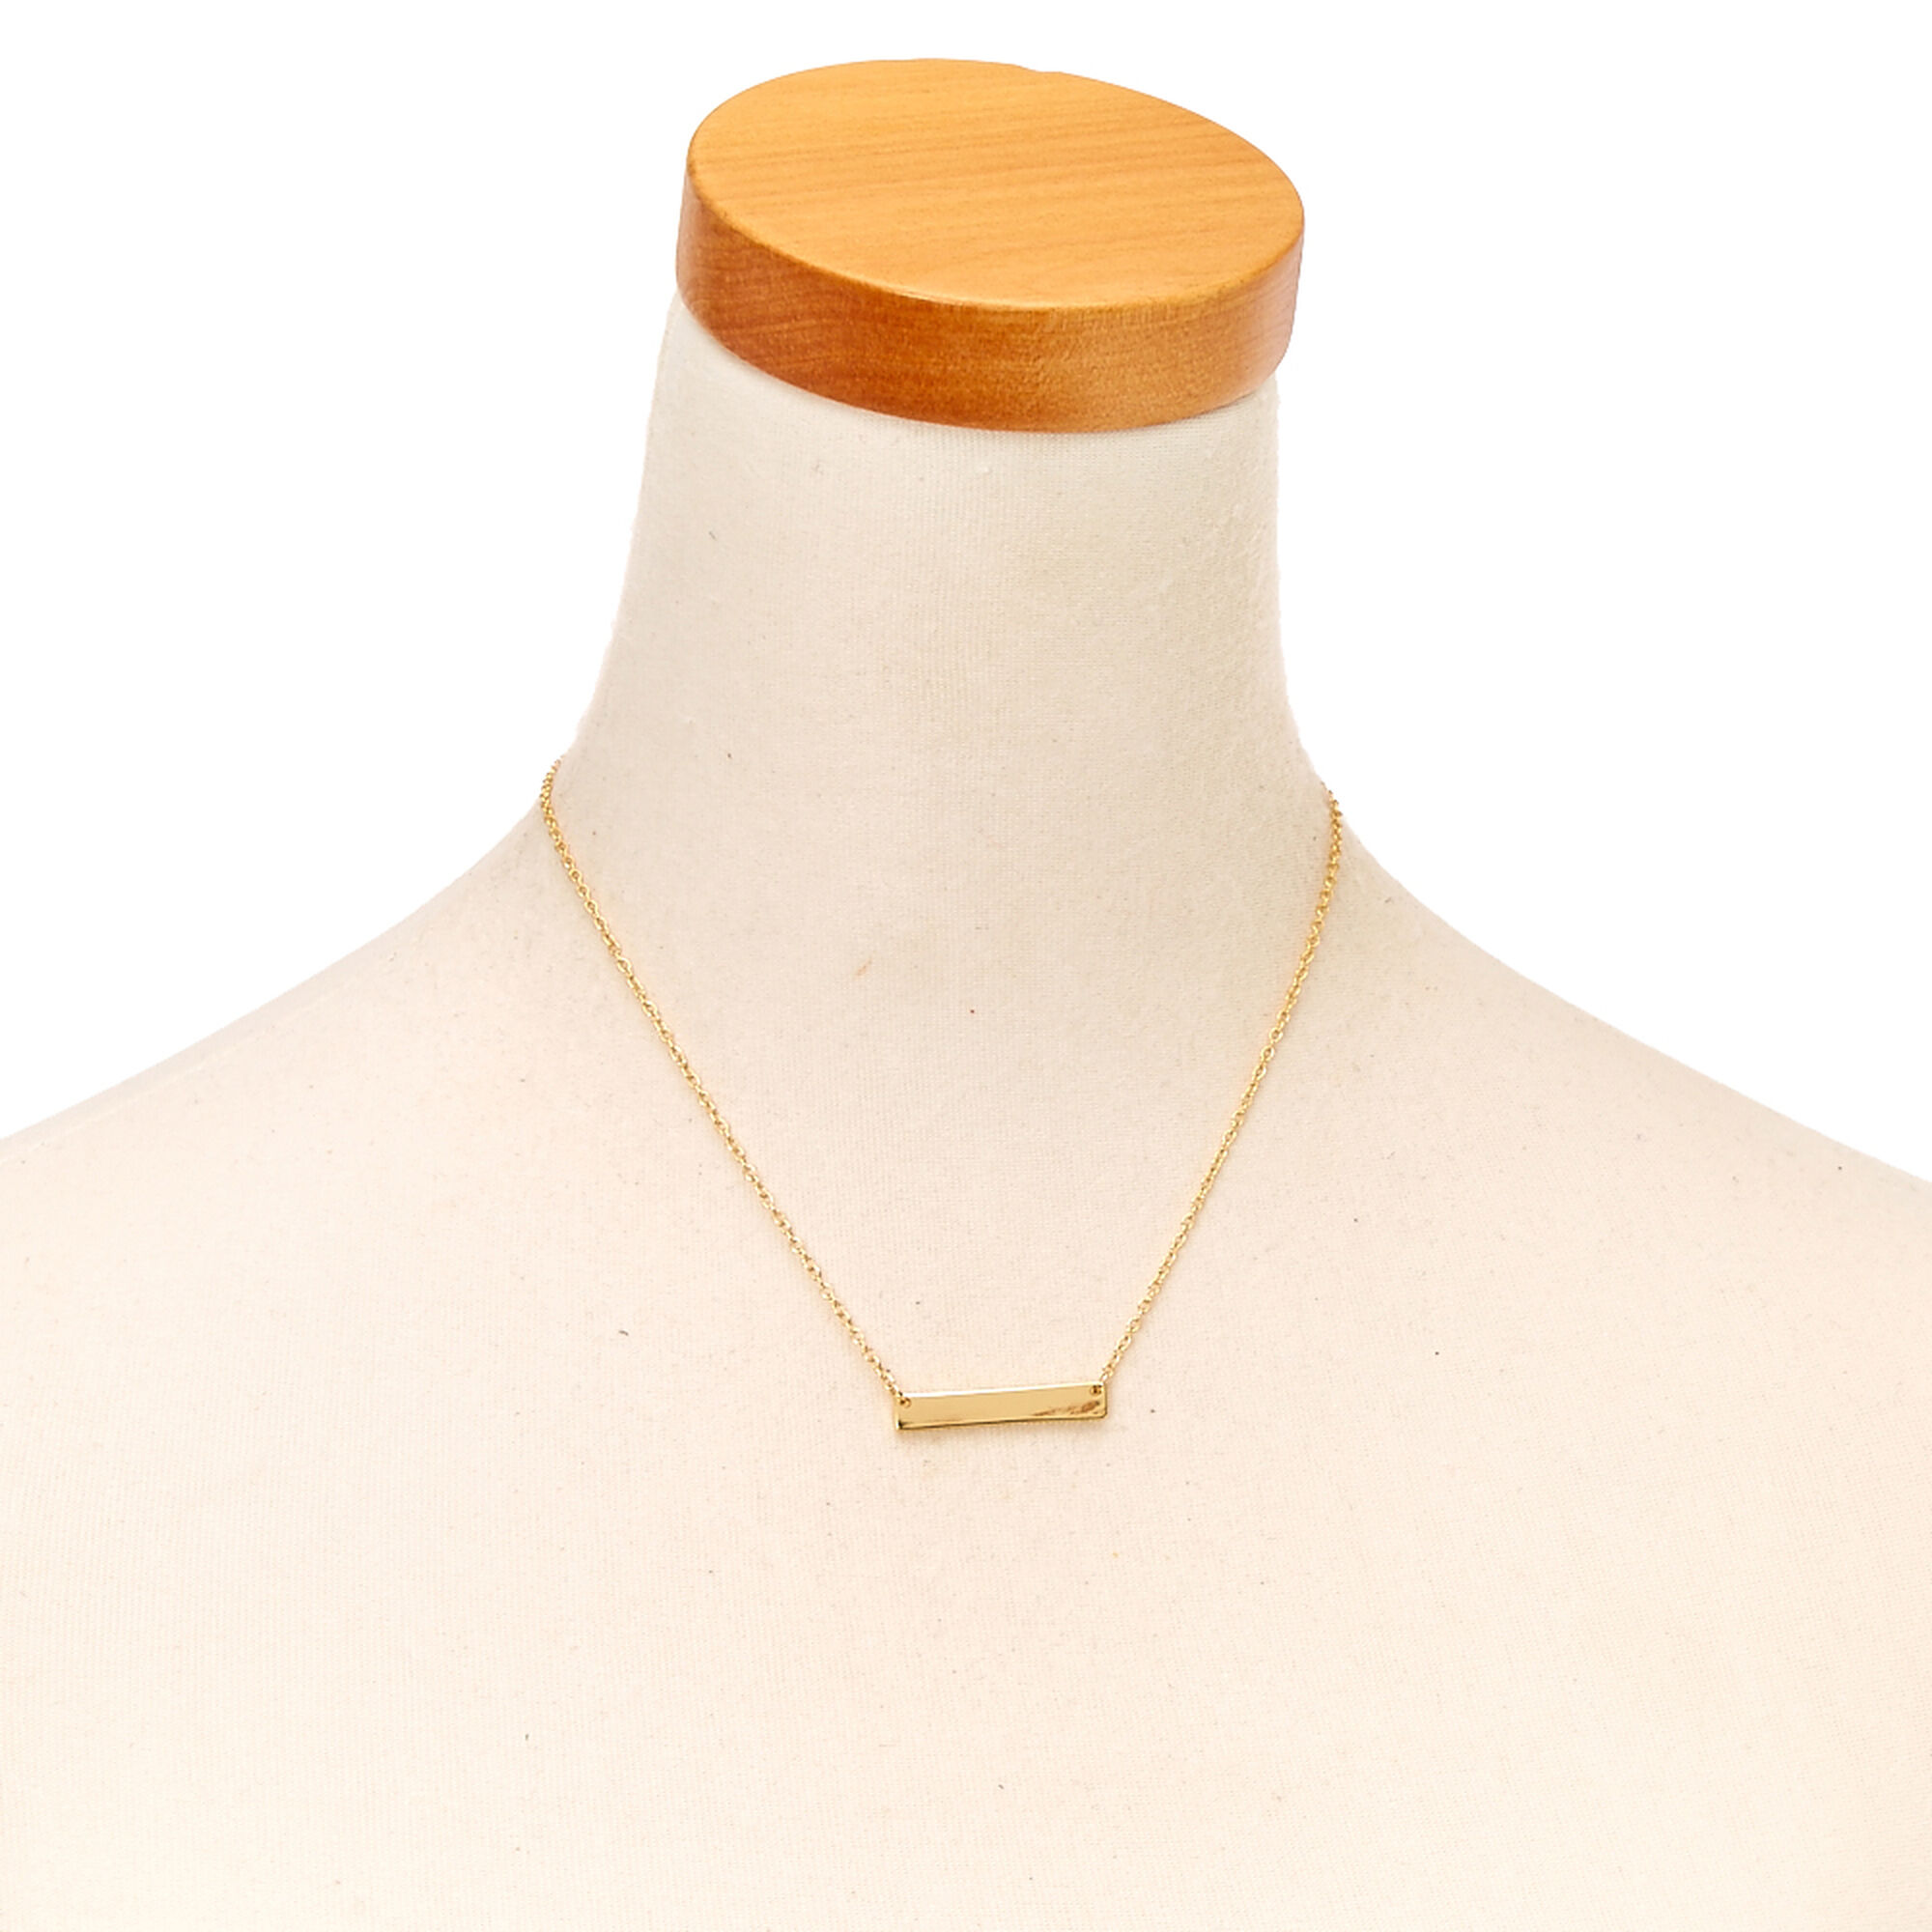 original dainty tube product necklace basic bar mini simple gold delicate